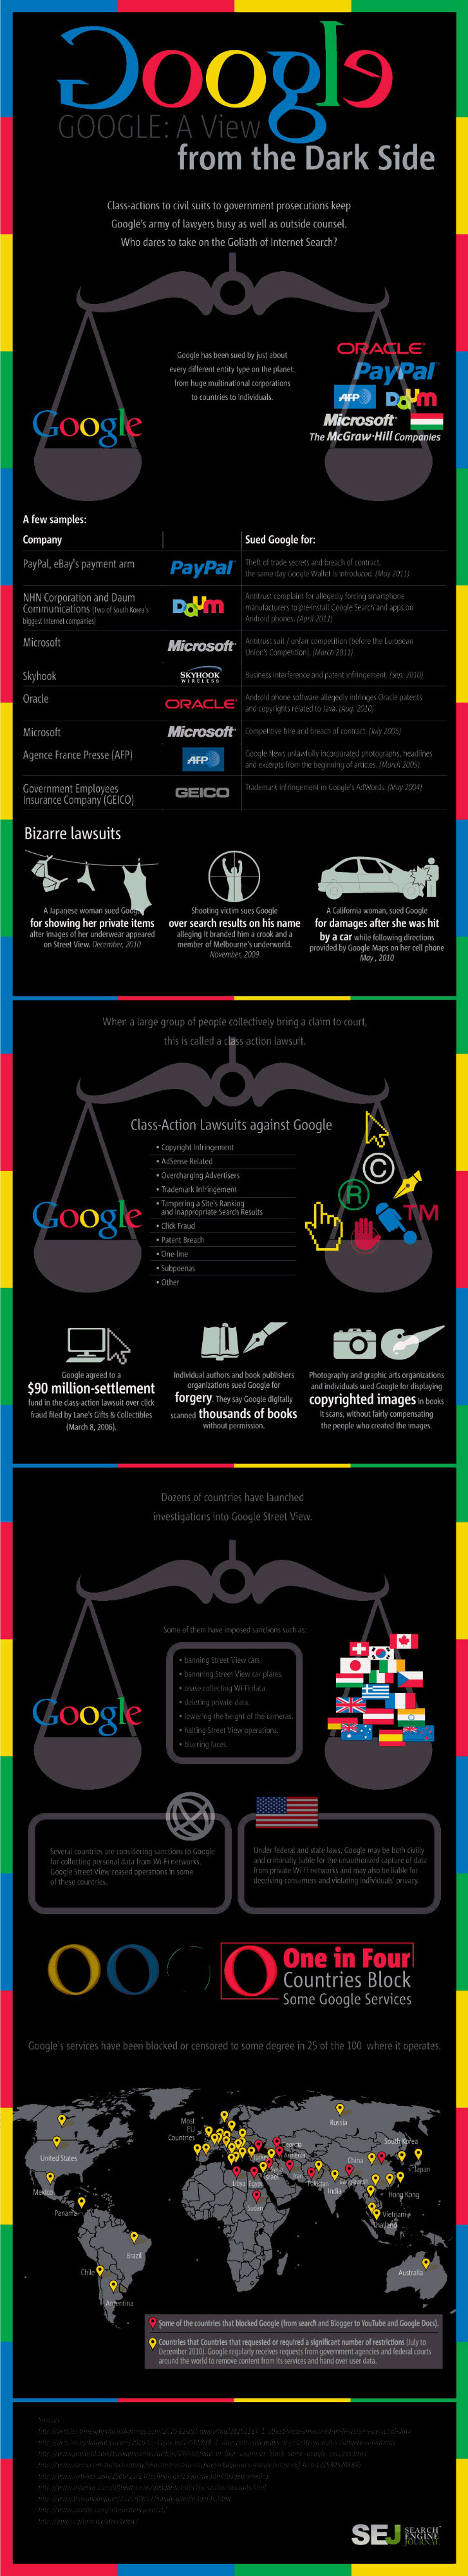 The Dark Side of Google [Infographic]